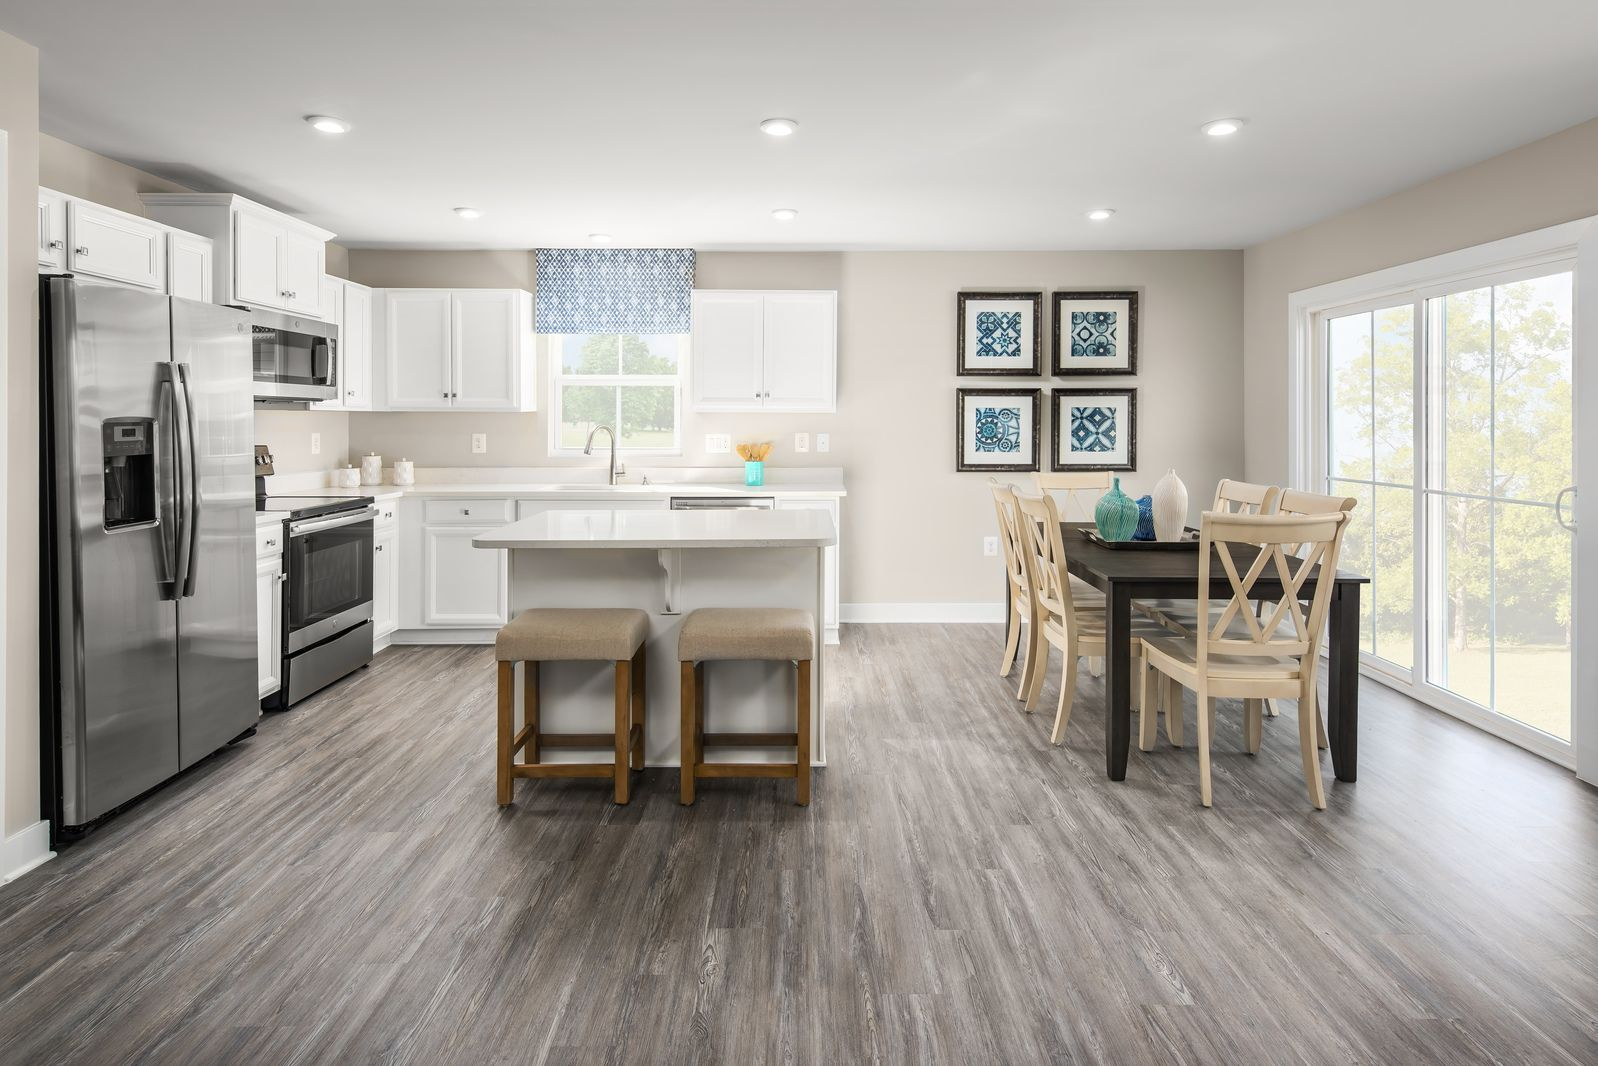 Kitchen featured in the Bahama By Ryan Homes in Cleveland, OH